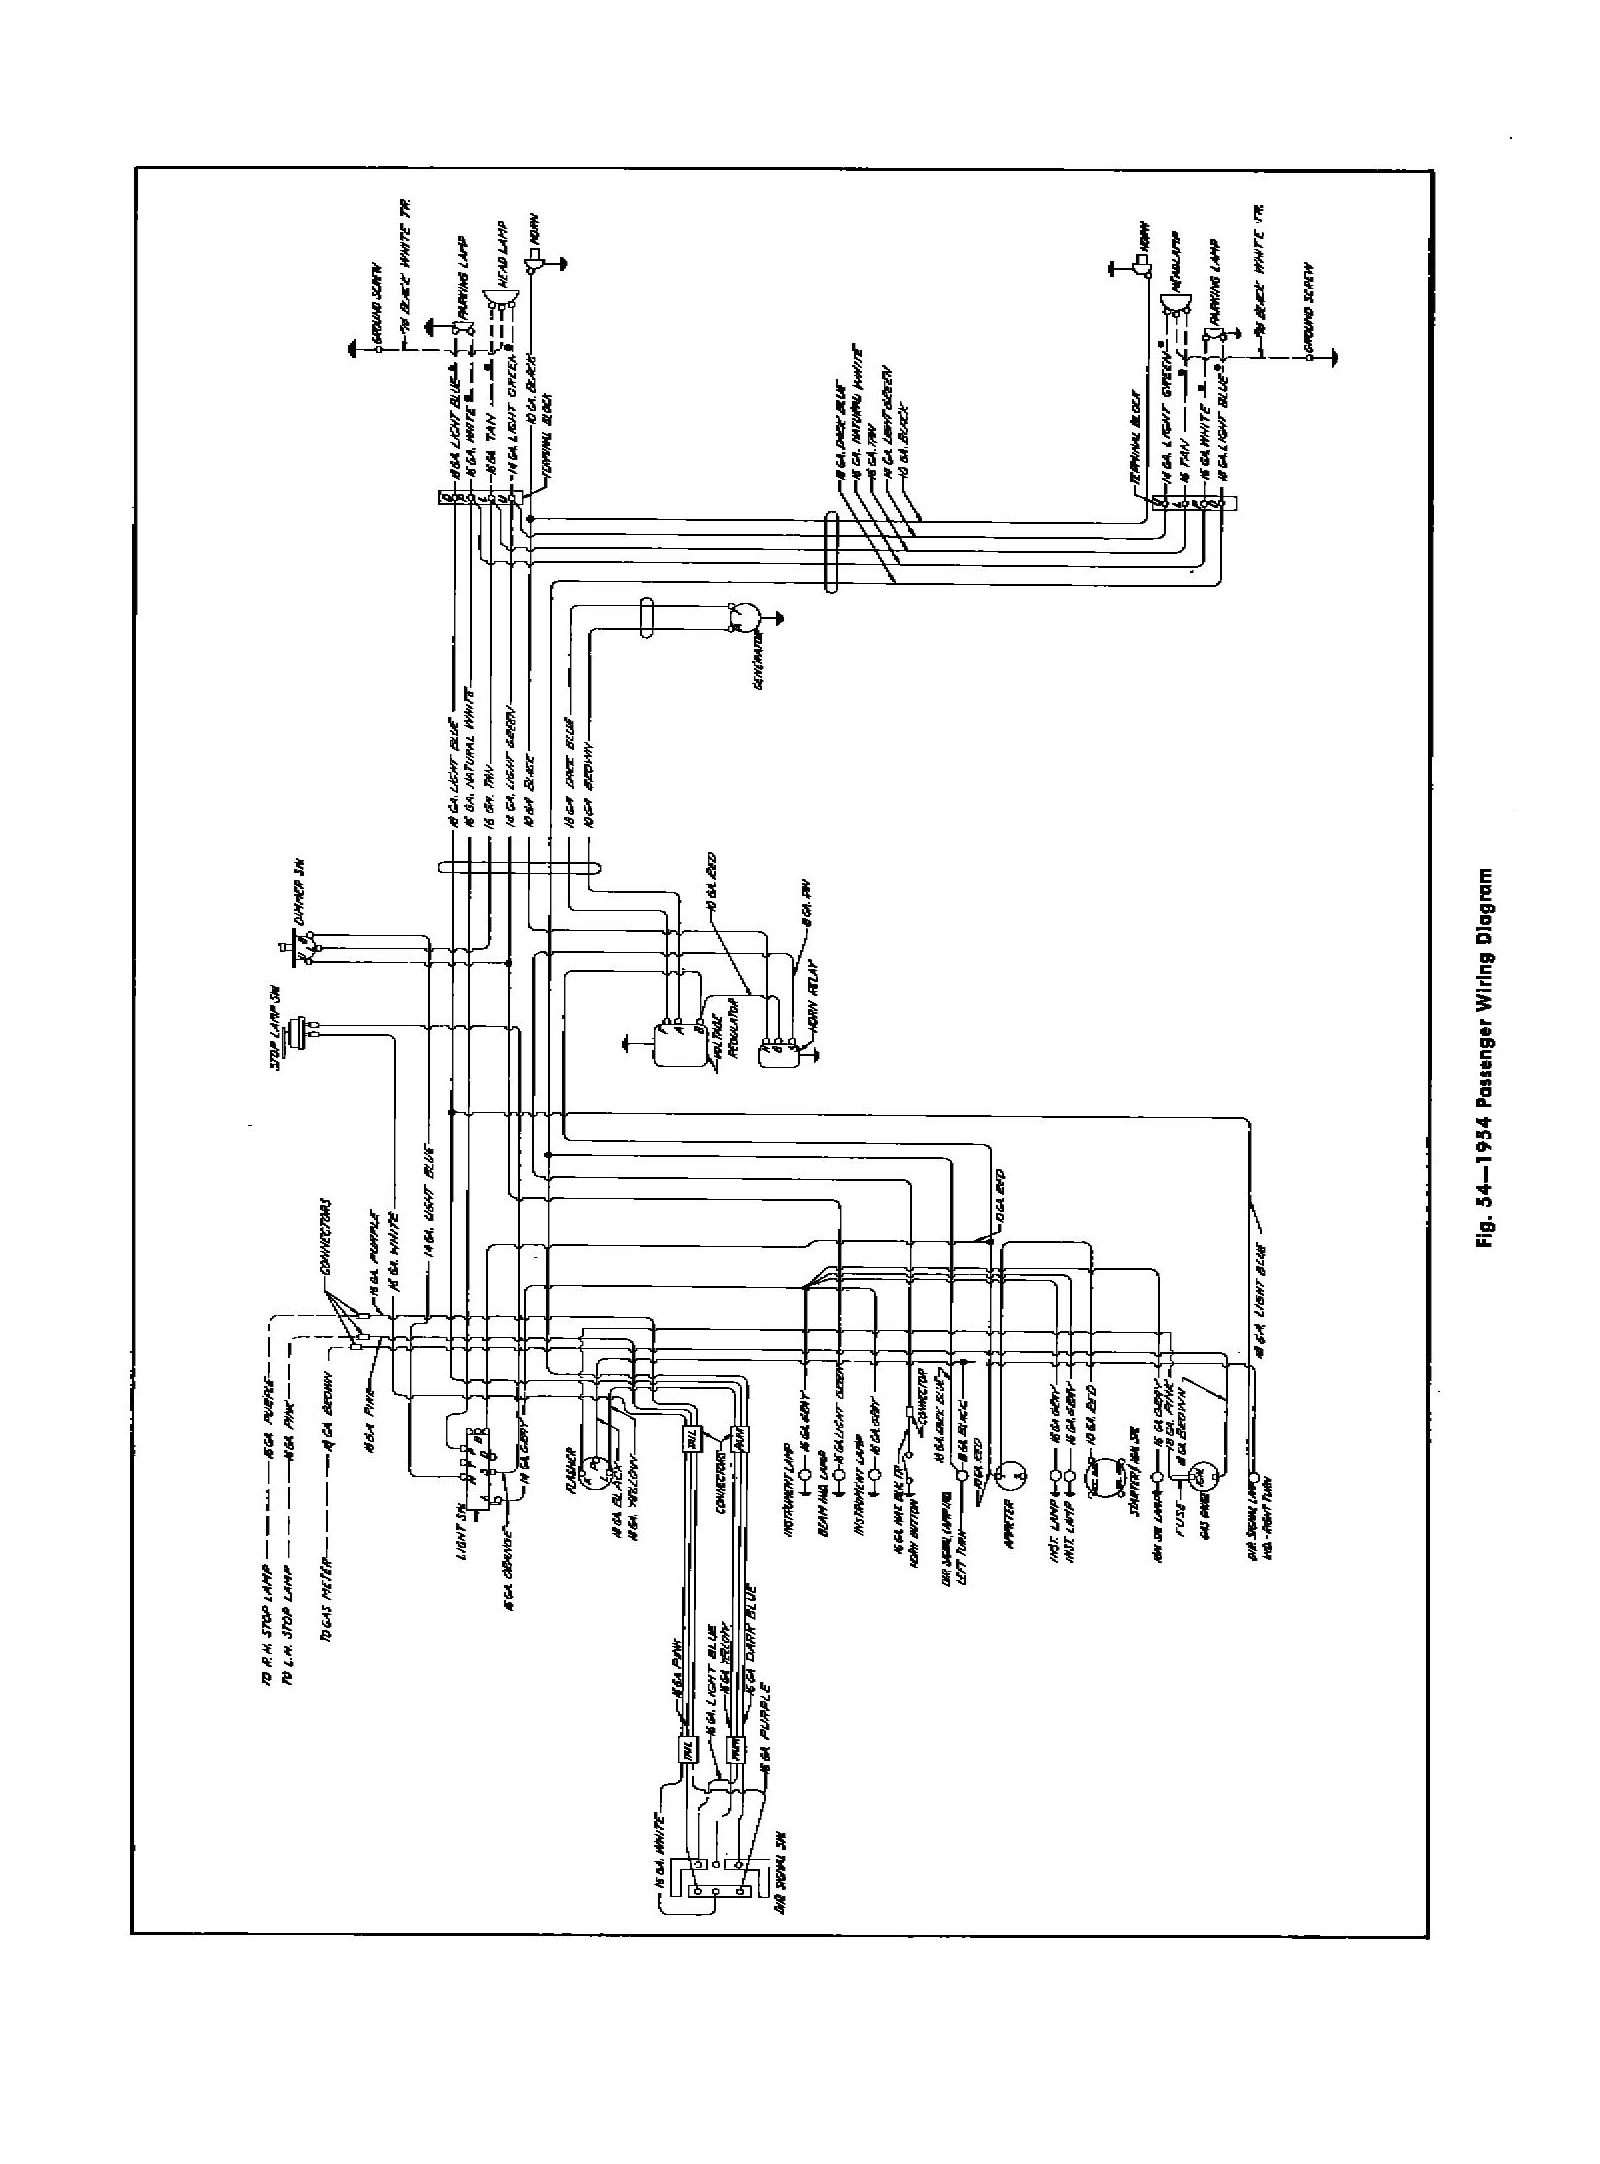 1957 chevy 3100 wiring diagram voltas package ac 1954 truck harness free